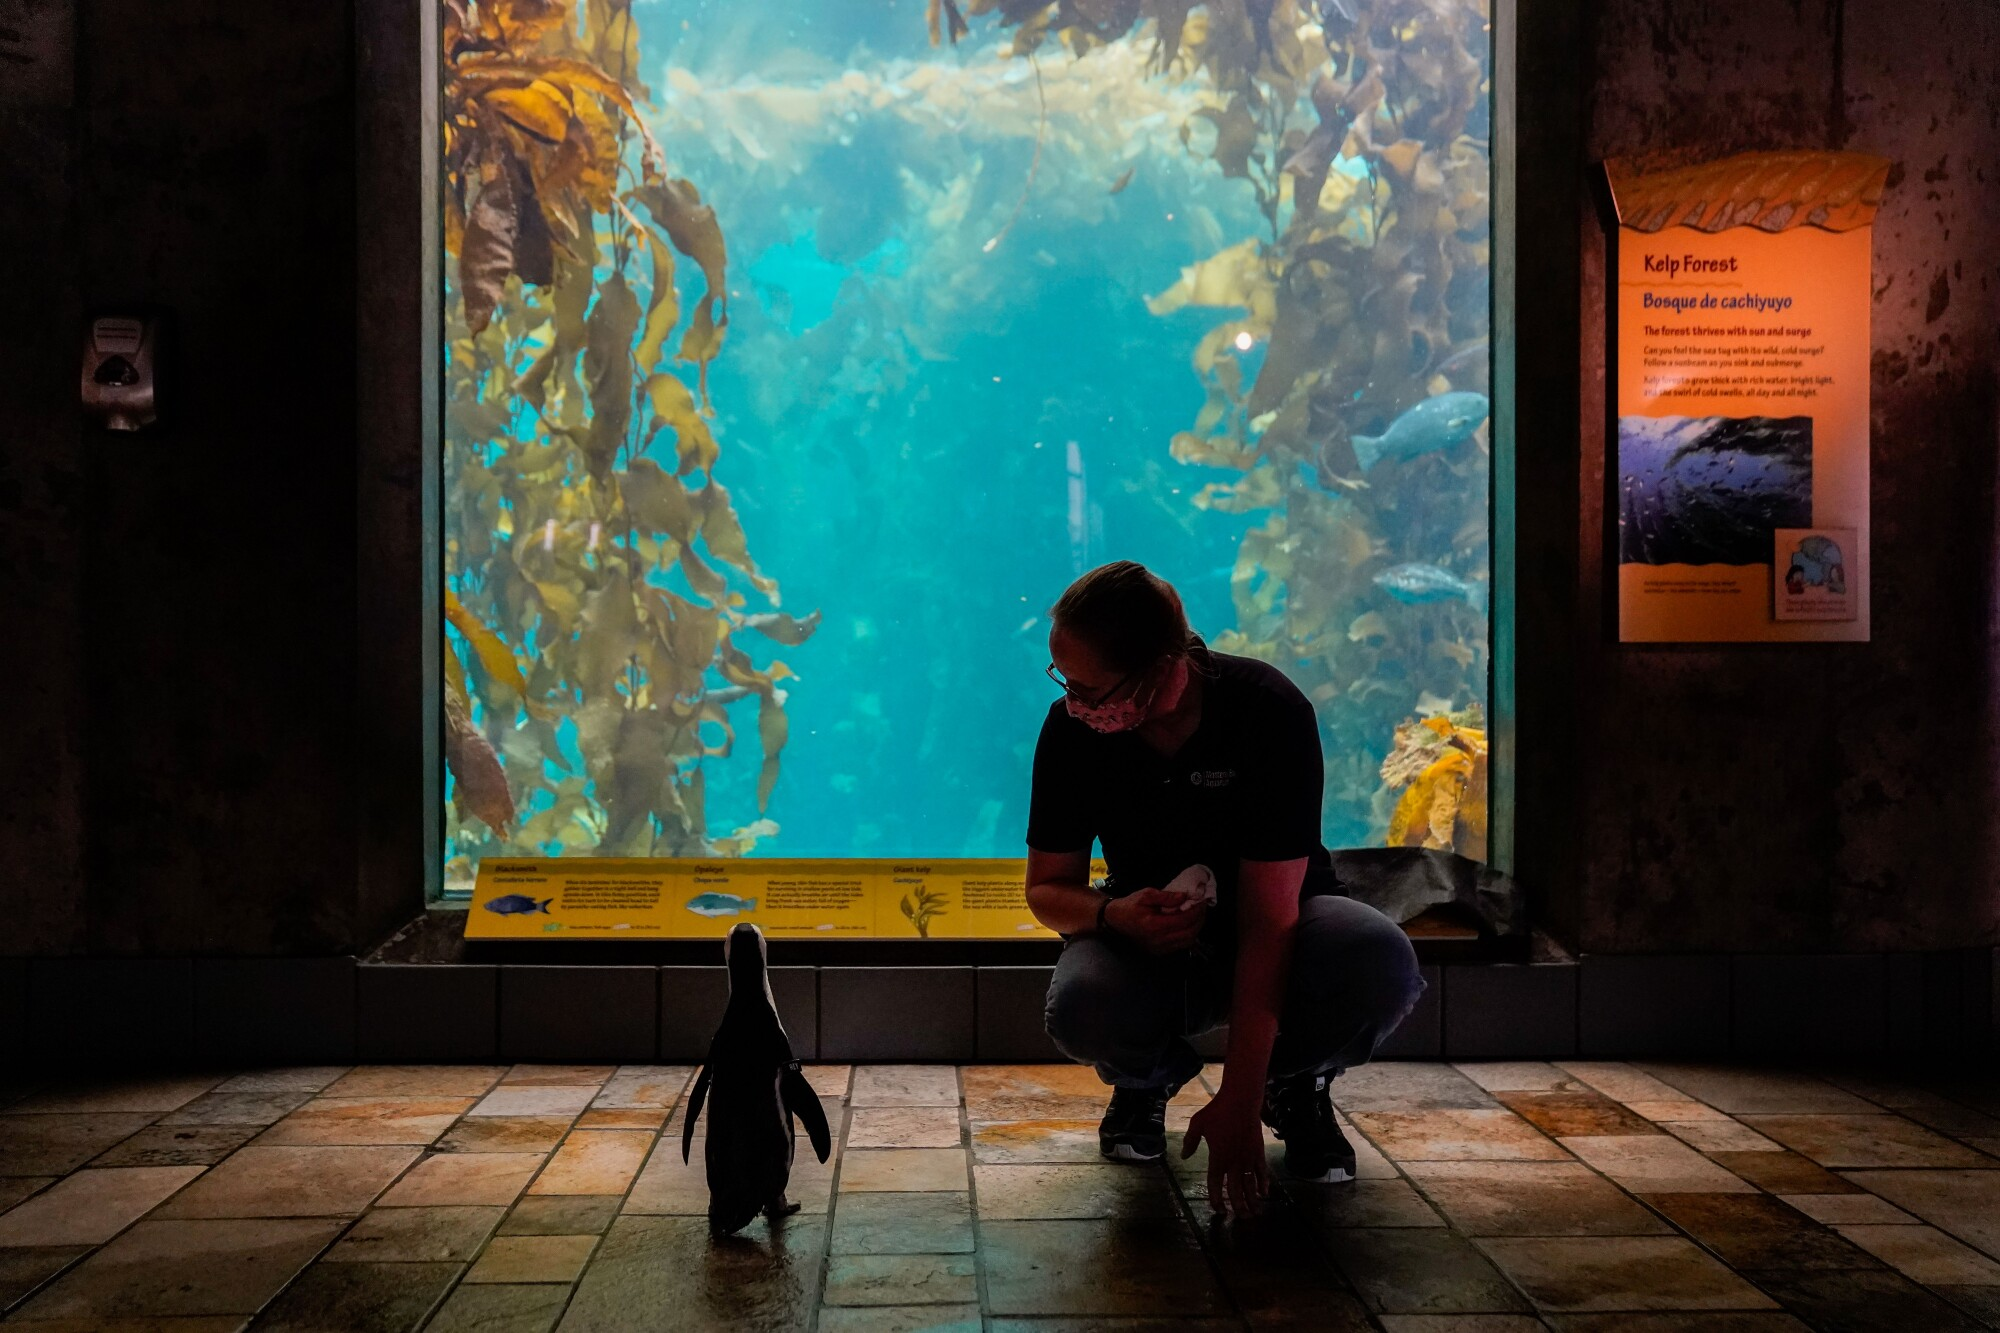 An aquarium worker kneels down next to a small penguin peeking into a tank filled with kelp and fish